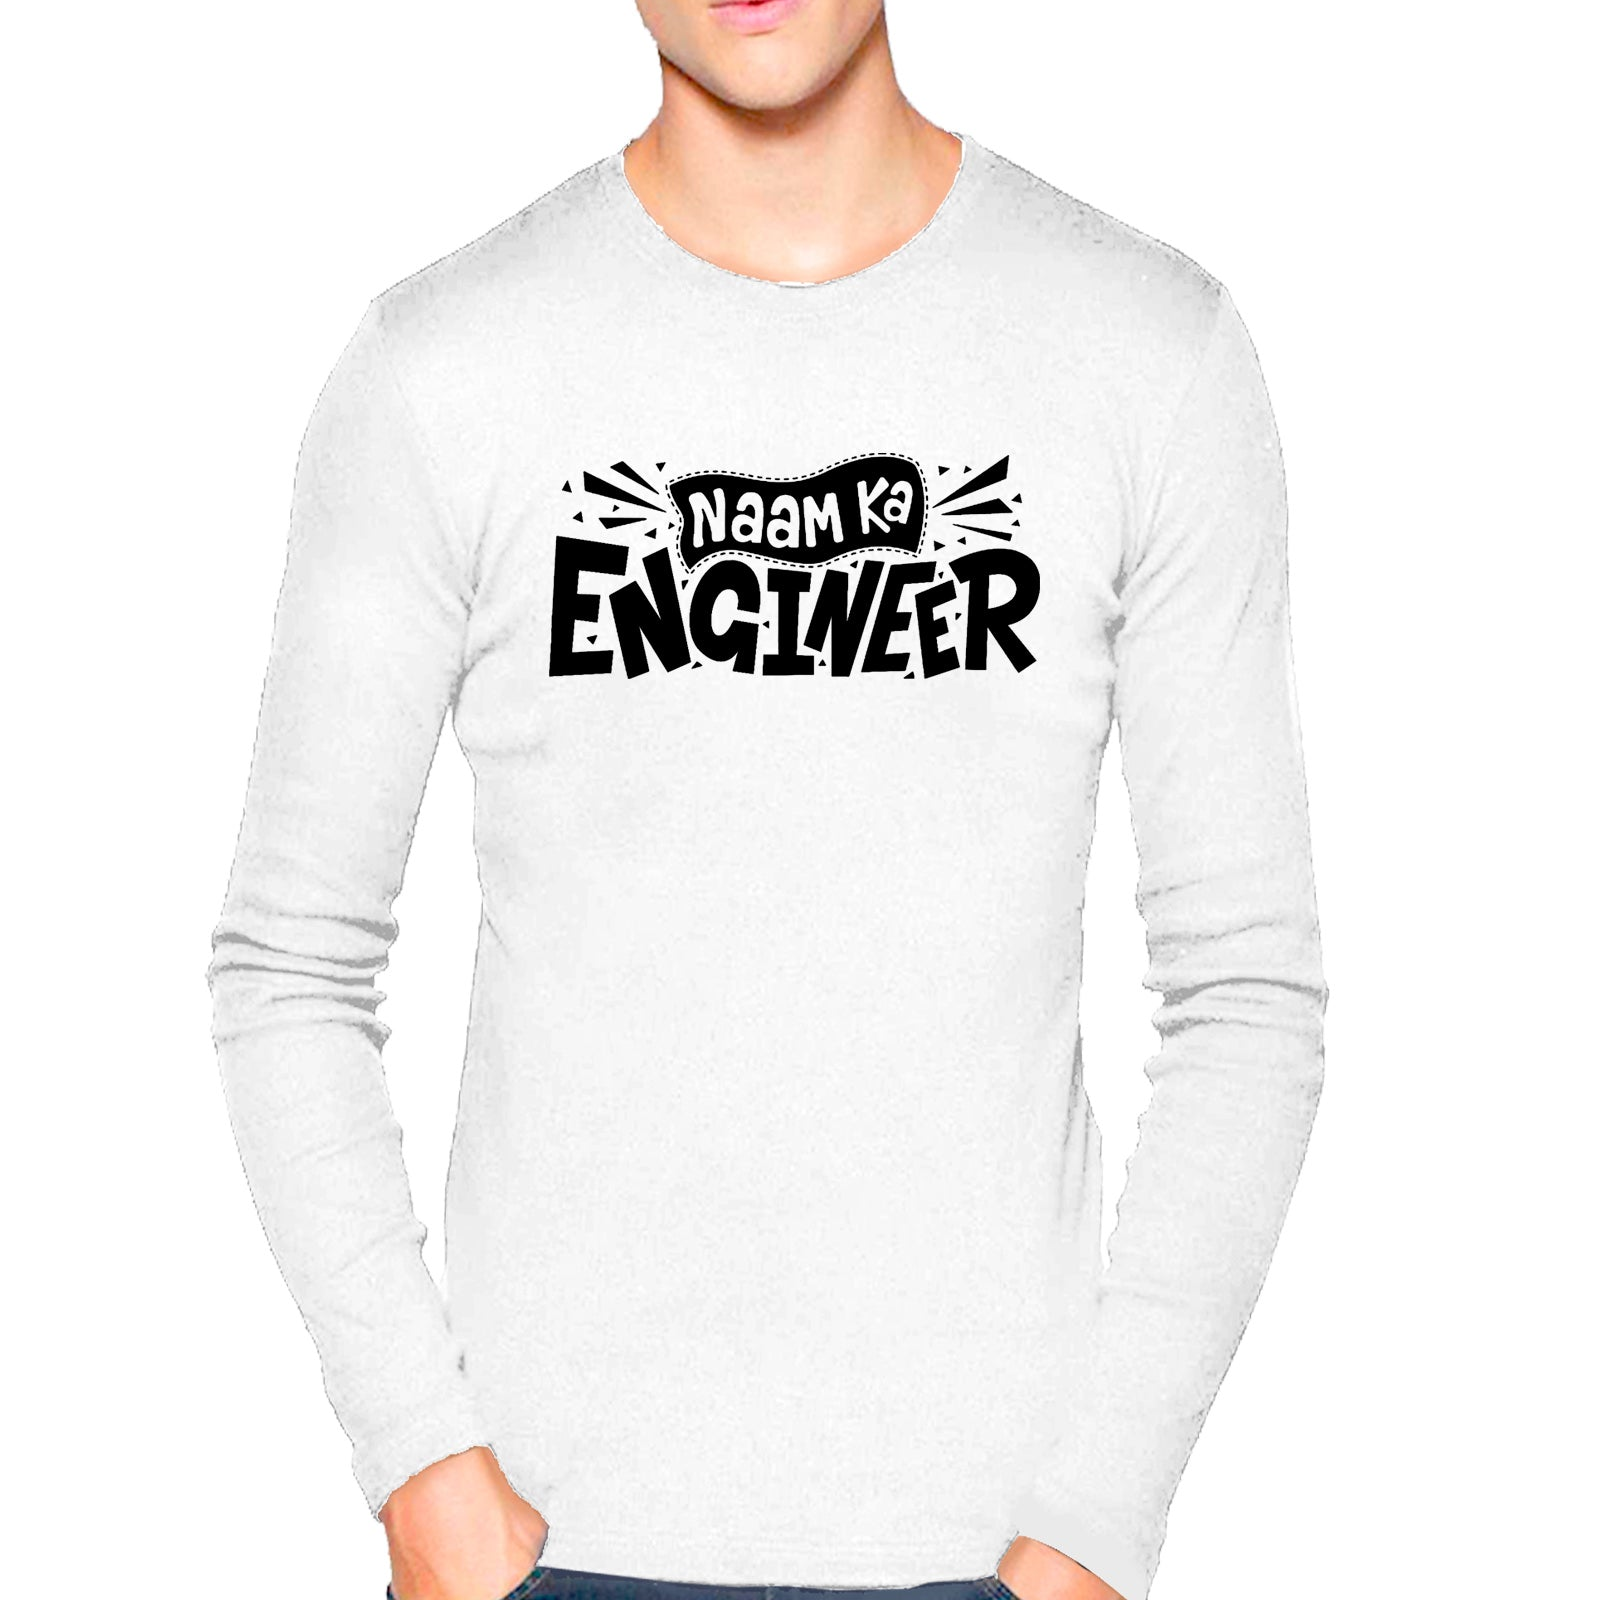 6f761370f427 T Shirts for Men Naam Ka Engineer Texts White T Shirt Round Neck Full  Sleeve ...